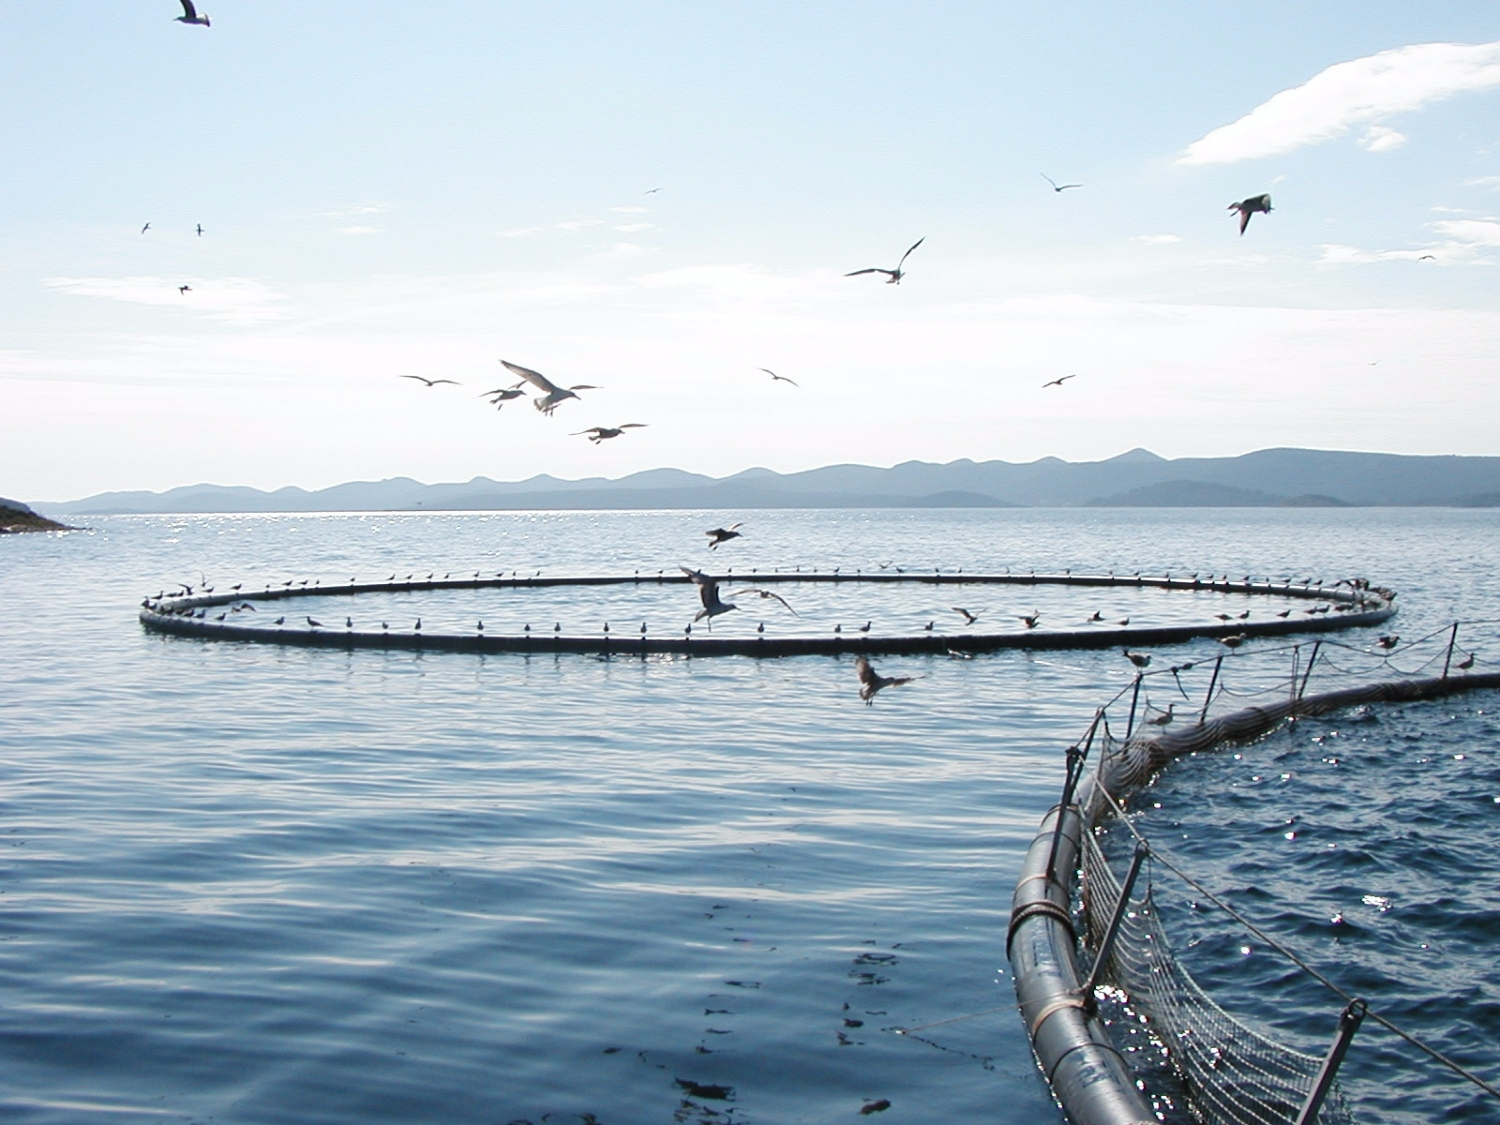 MASTER OF APPLIED SCIENCE IN AQUACULTURE CURRICULUM